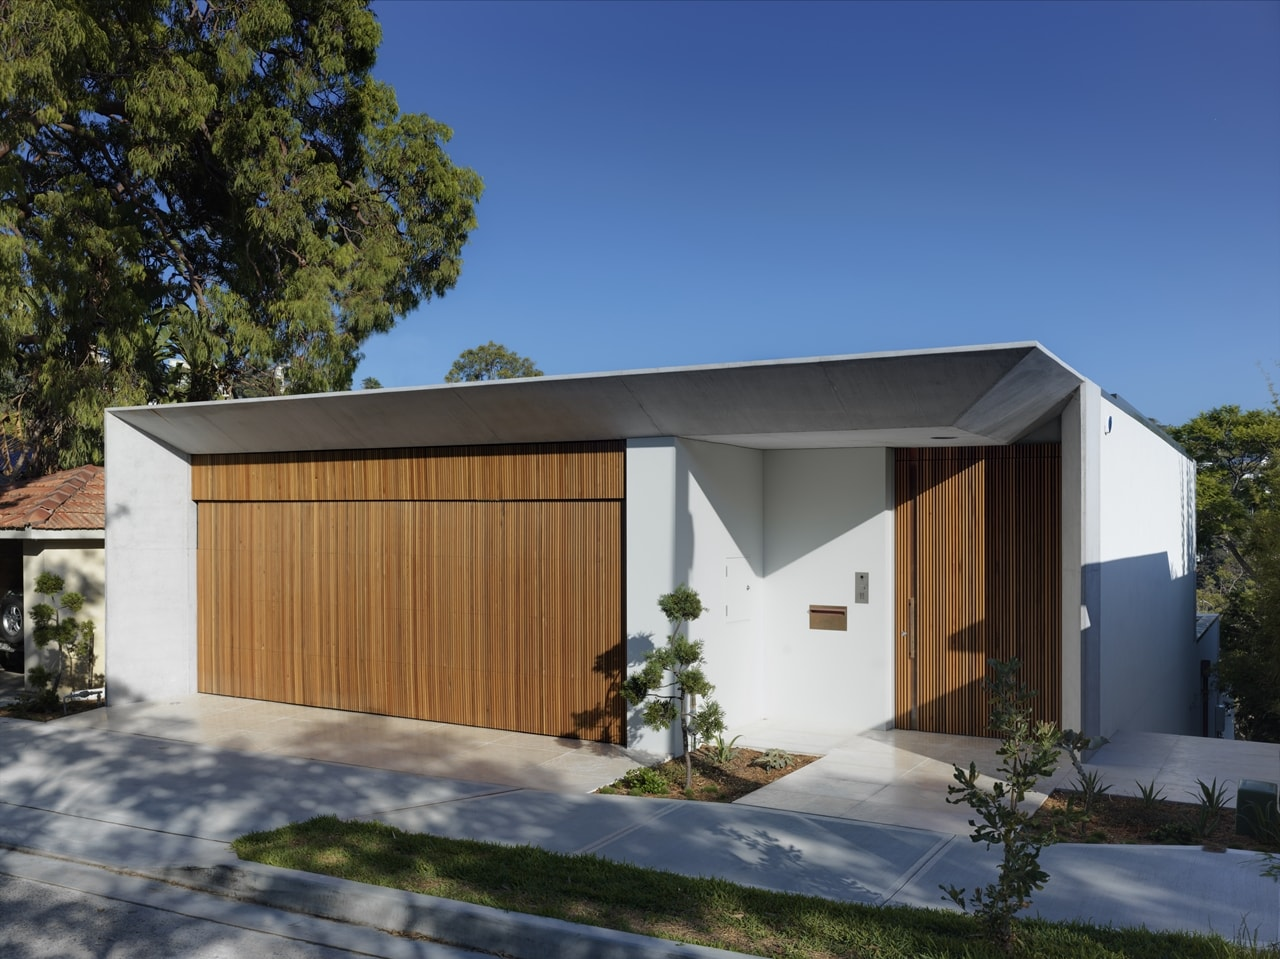 This House Design On Sloped Land Highlights All Benefits ...